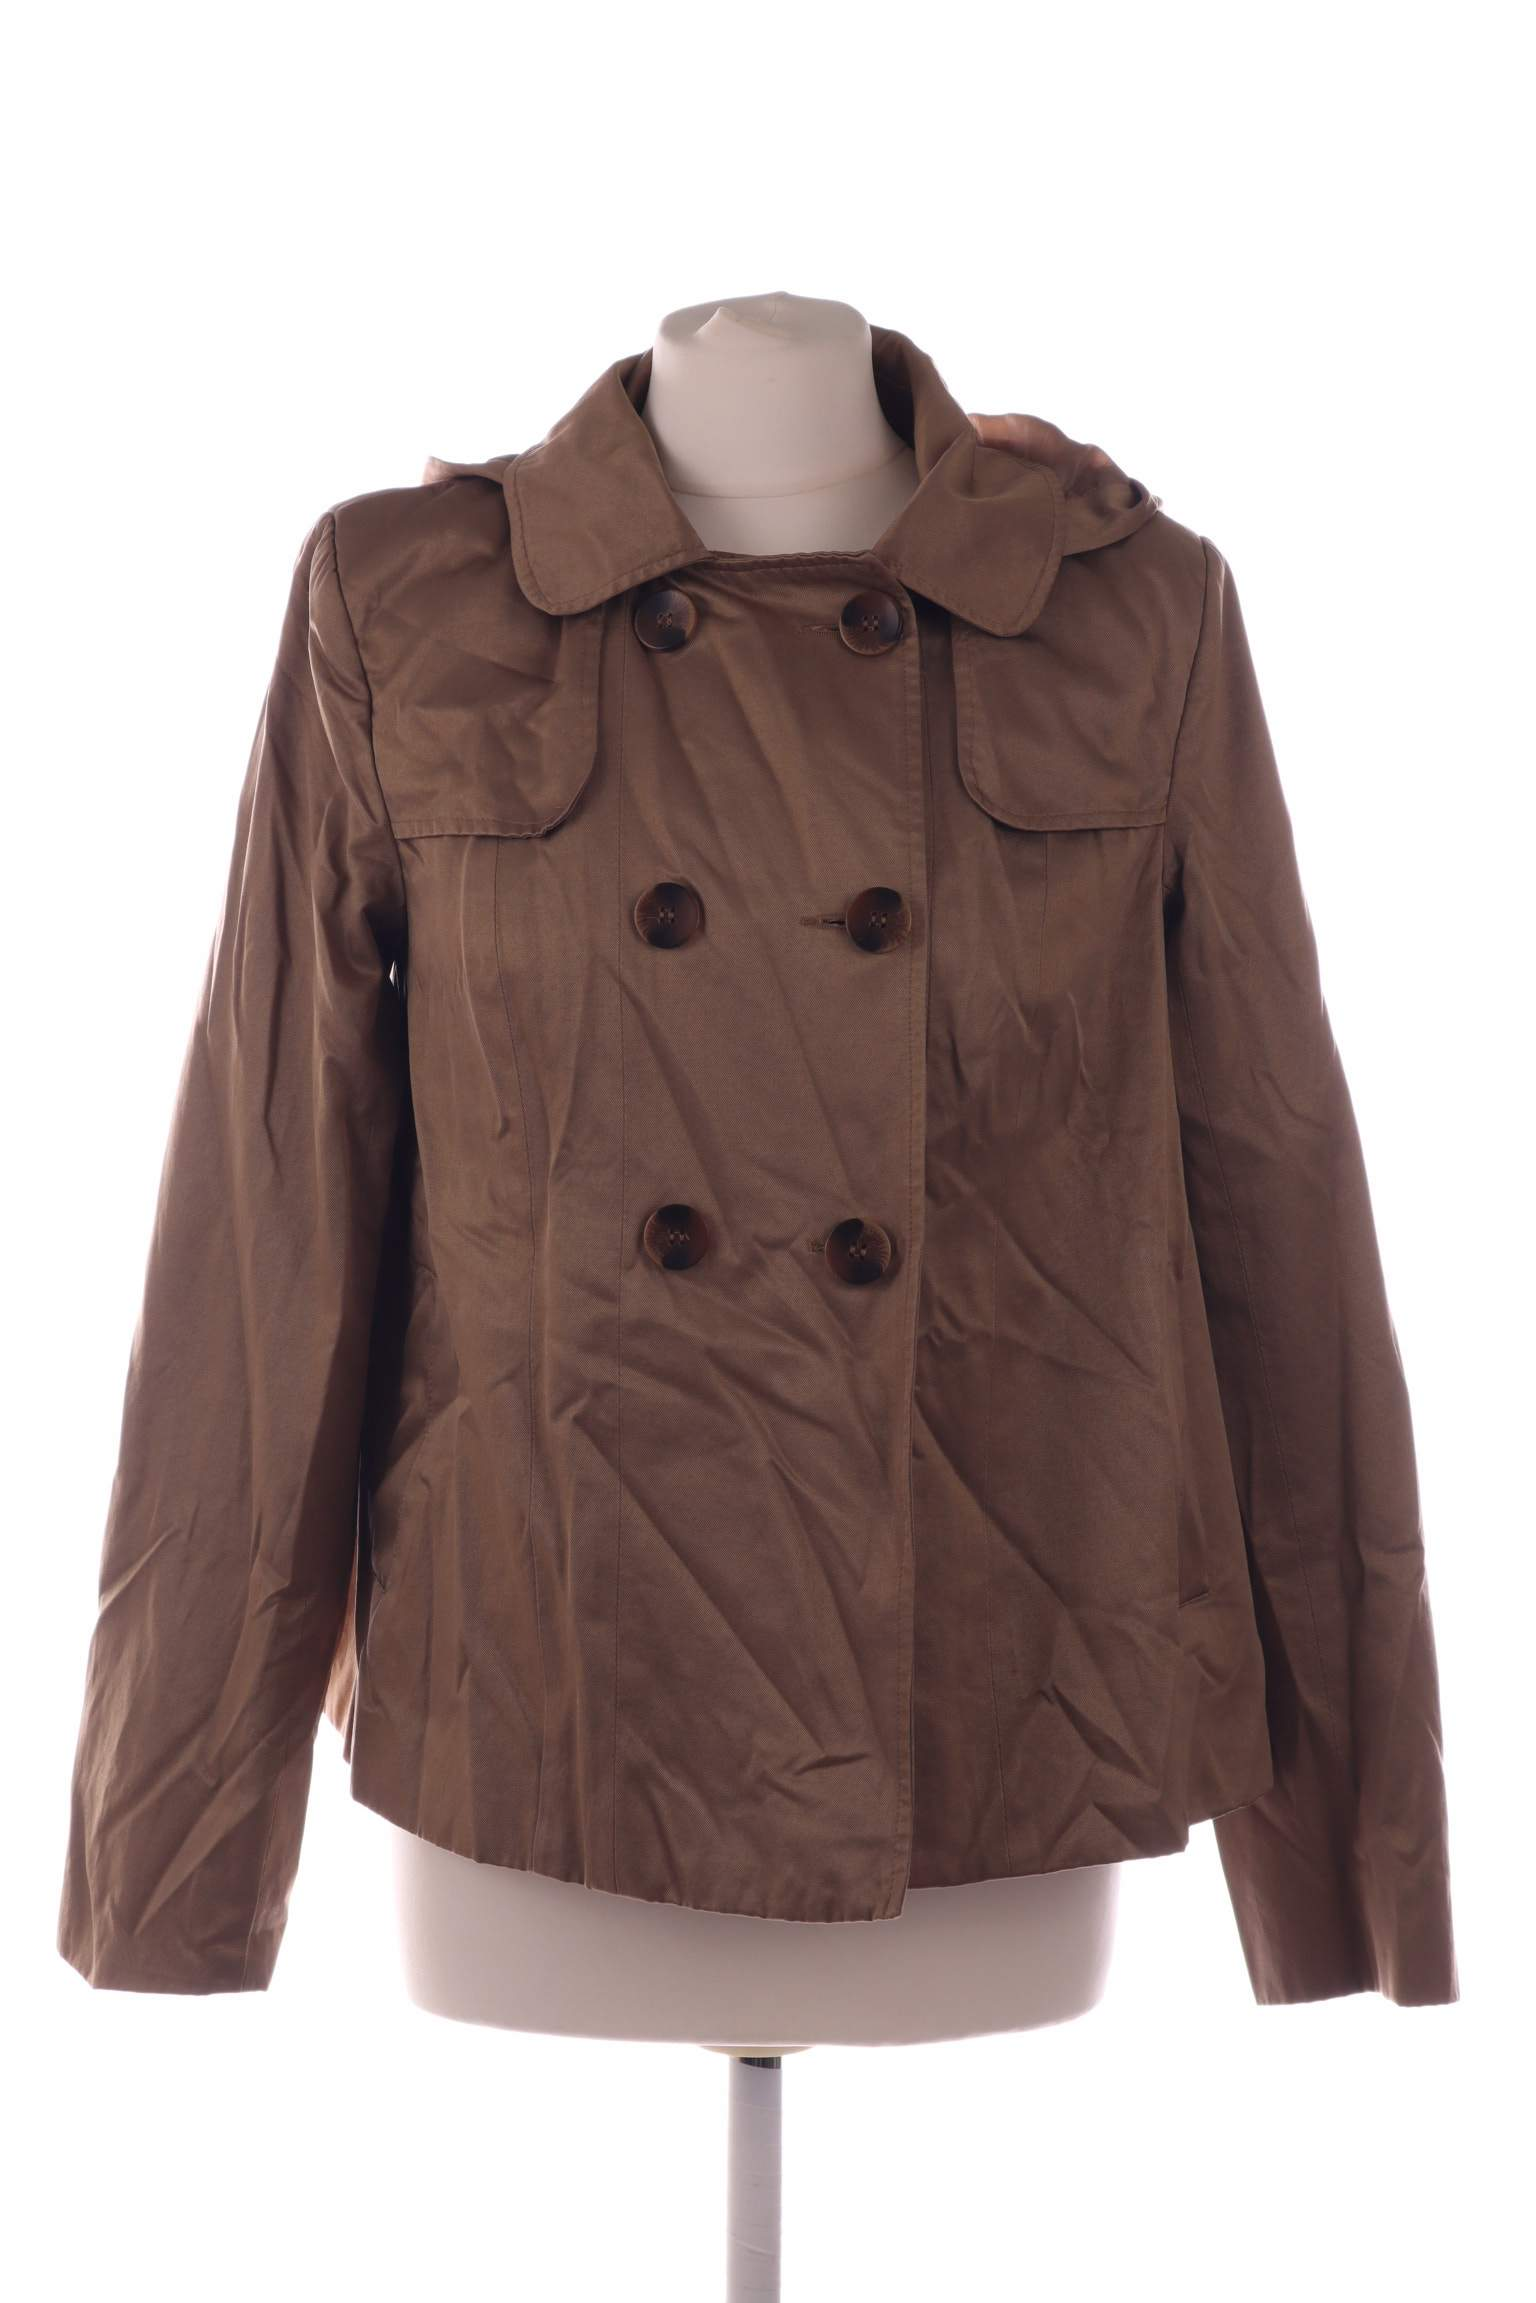 New look Beige Coat - upty.store